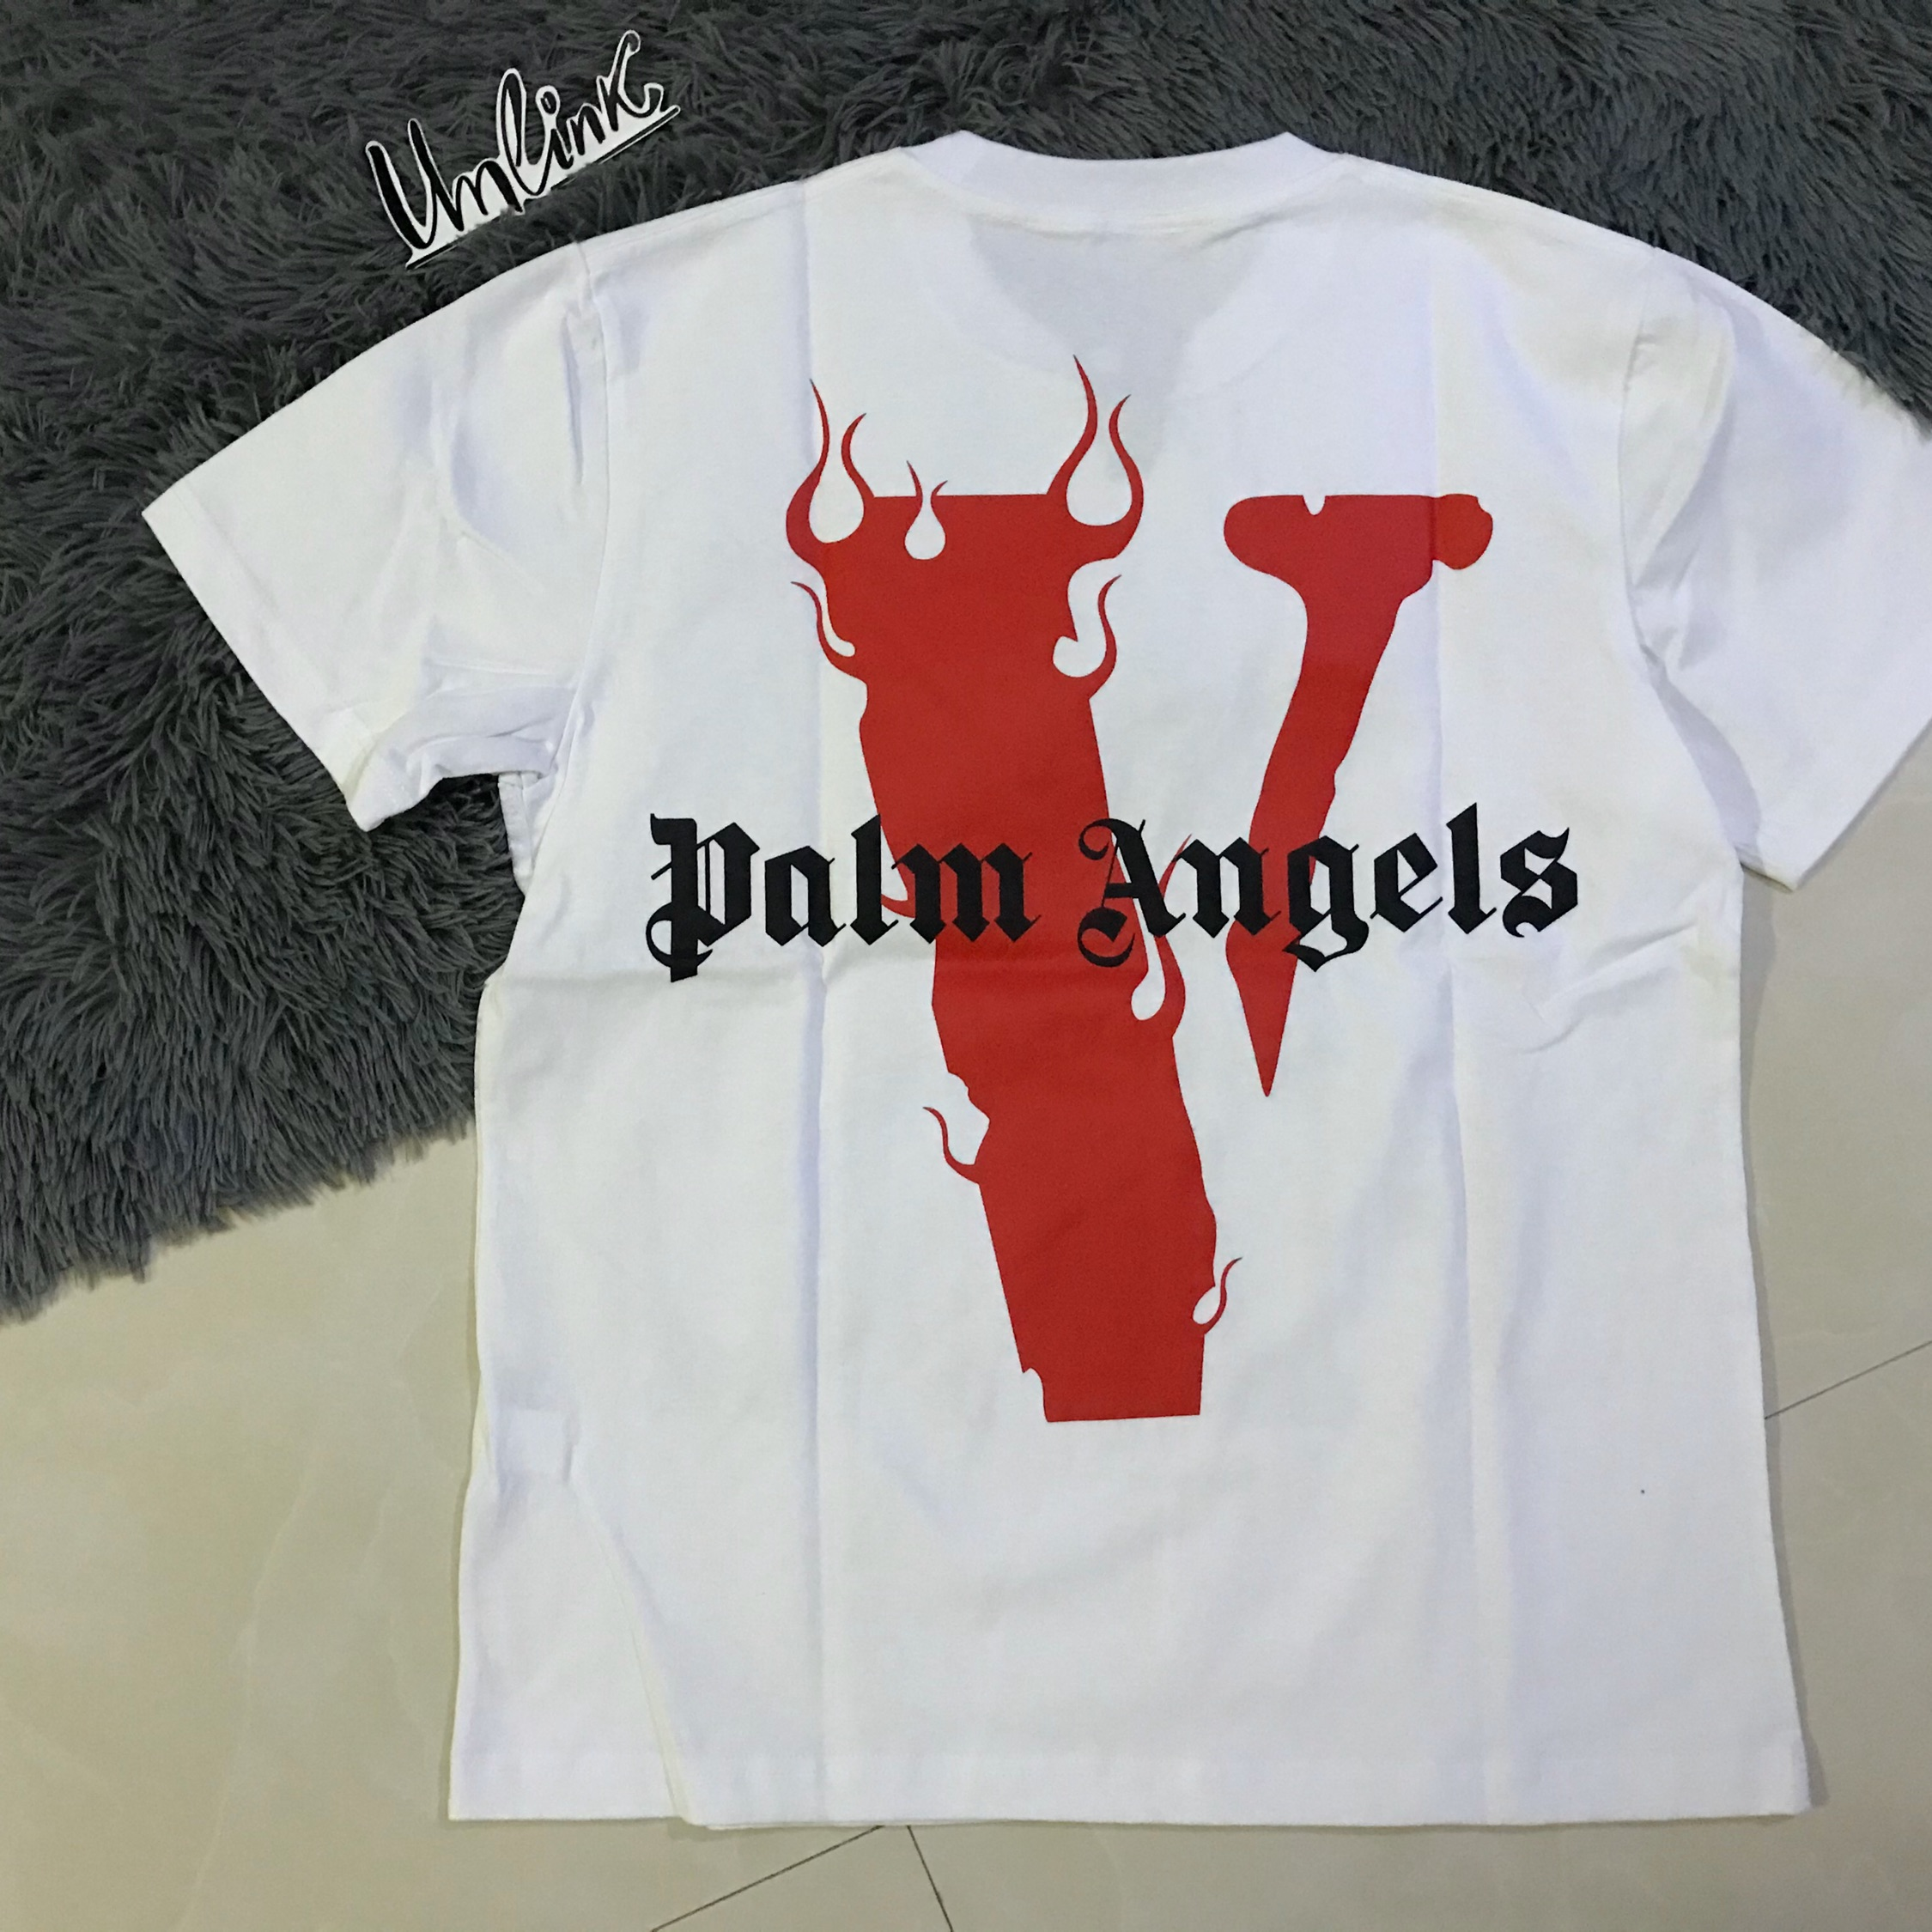 Vlone X Palm Angels White Red Tee